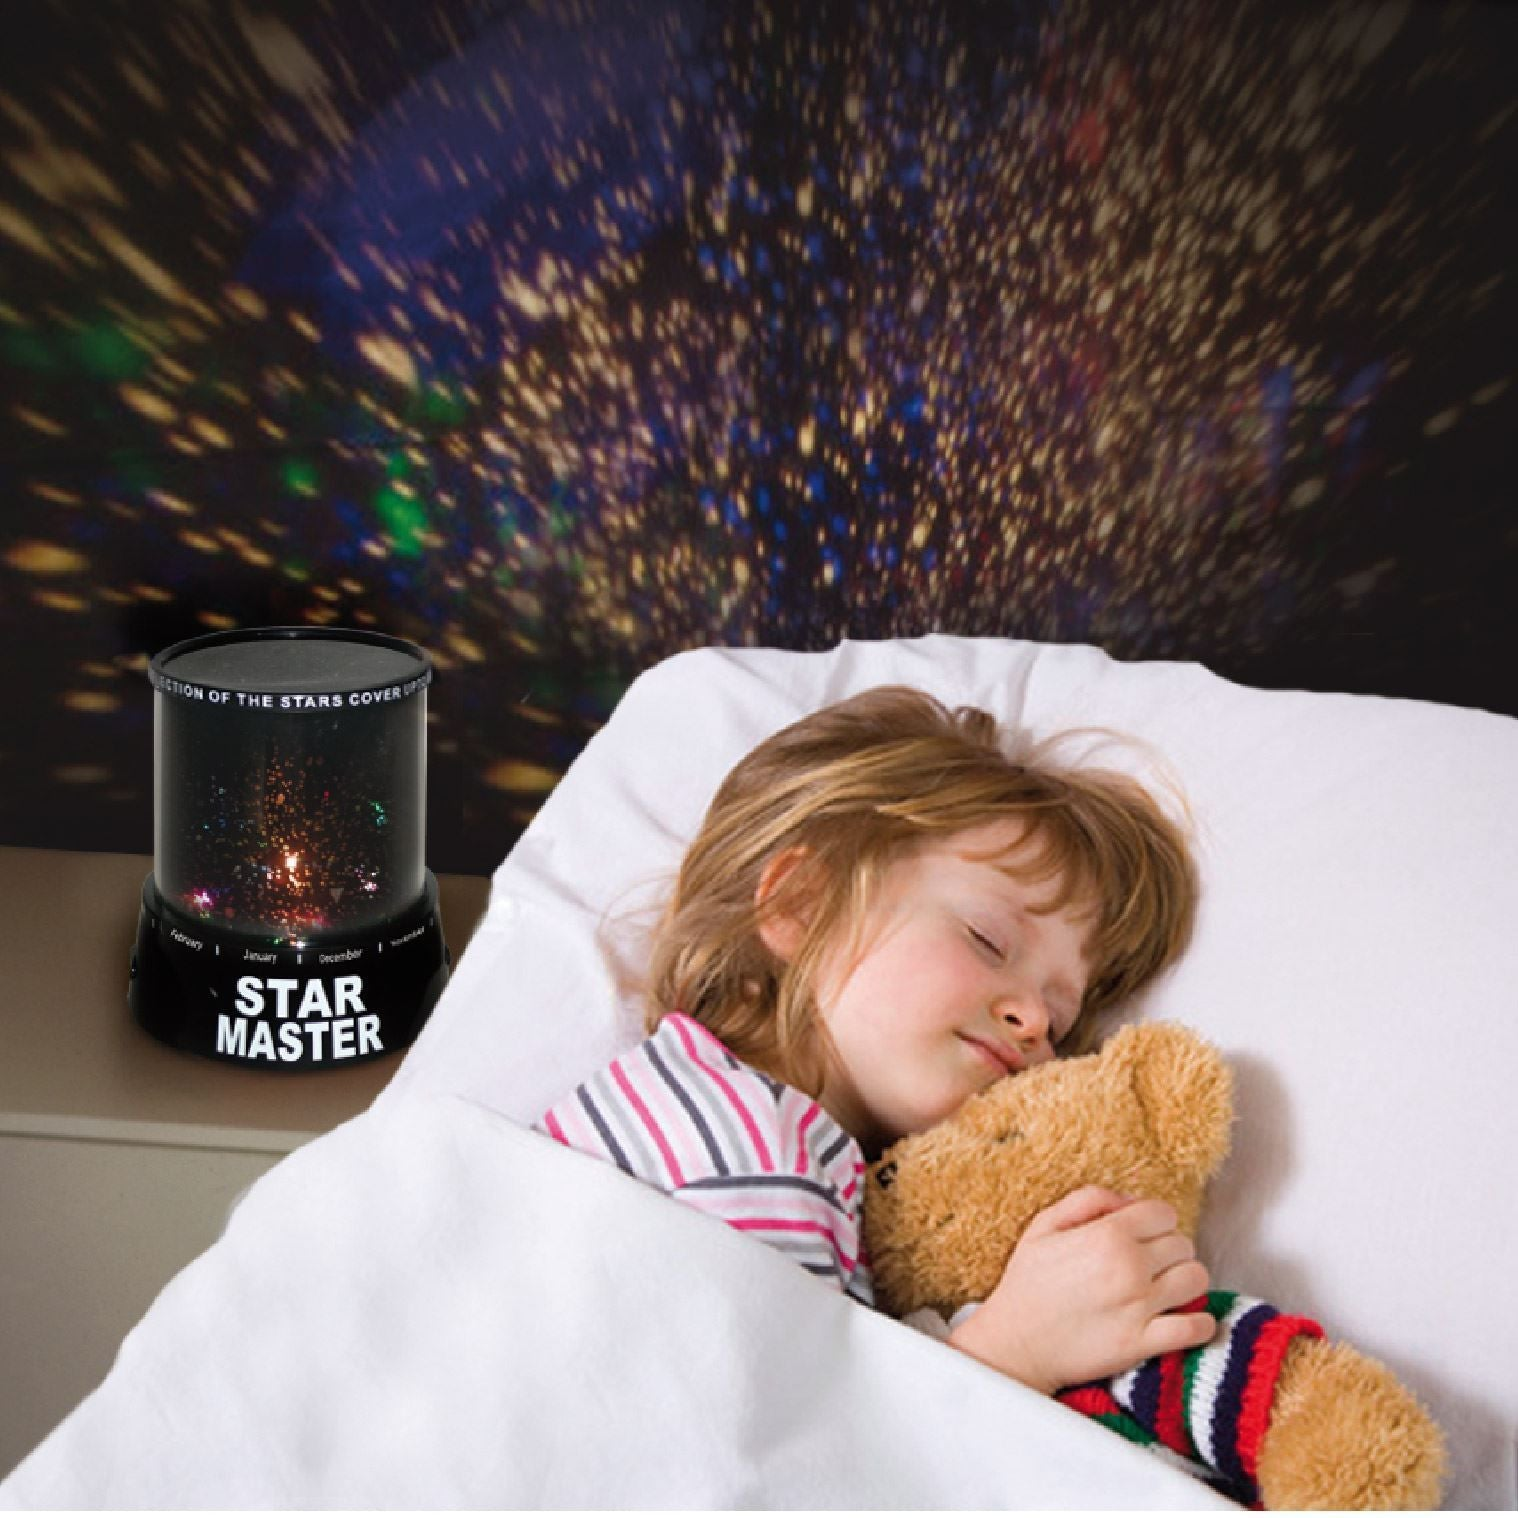 Star Master Planetarium Night Light Projector